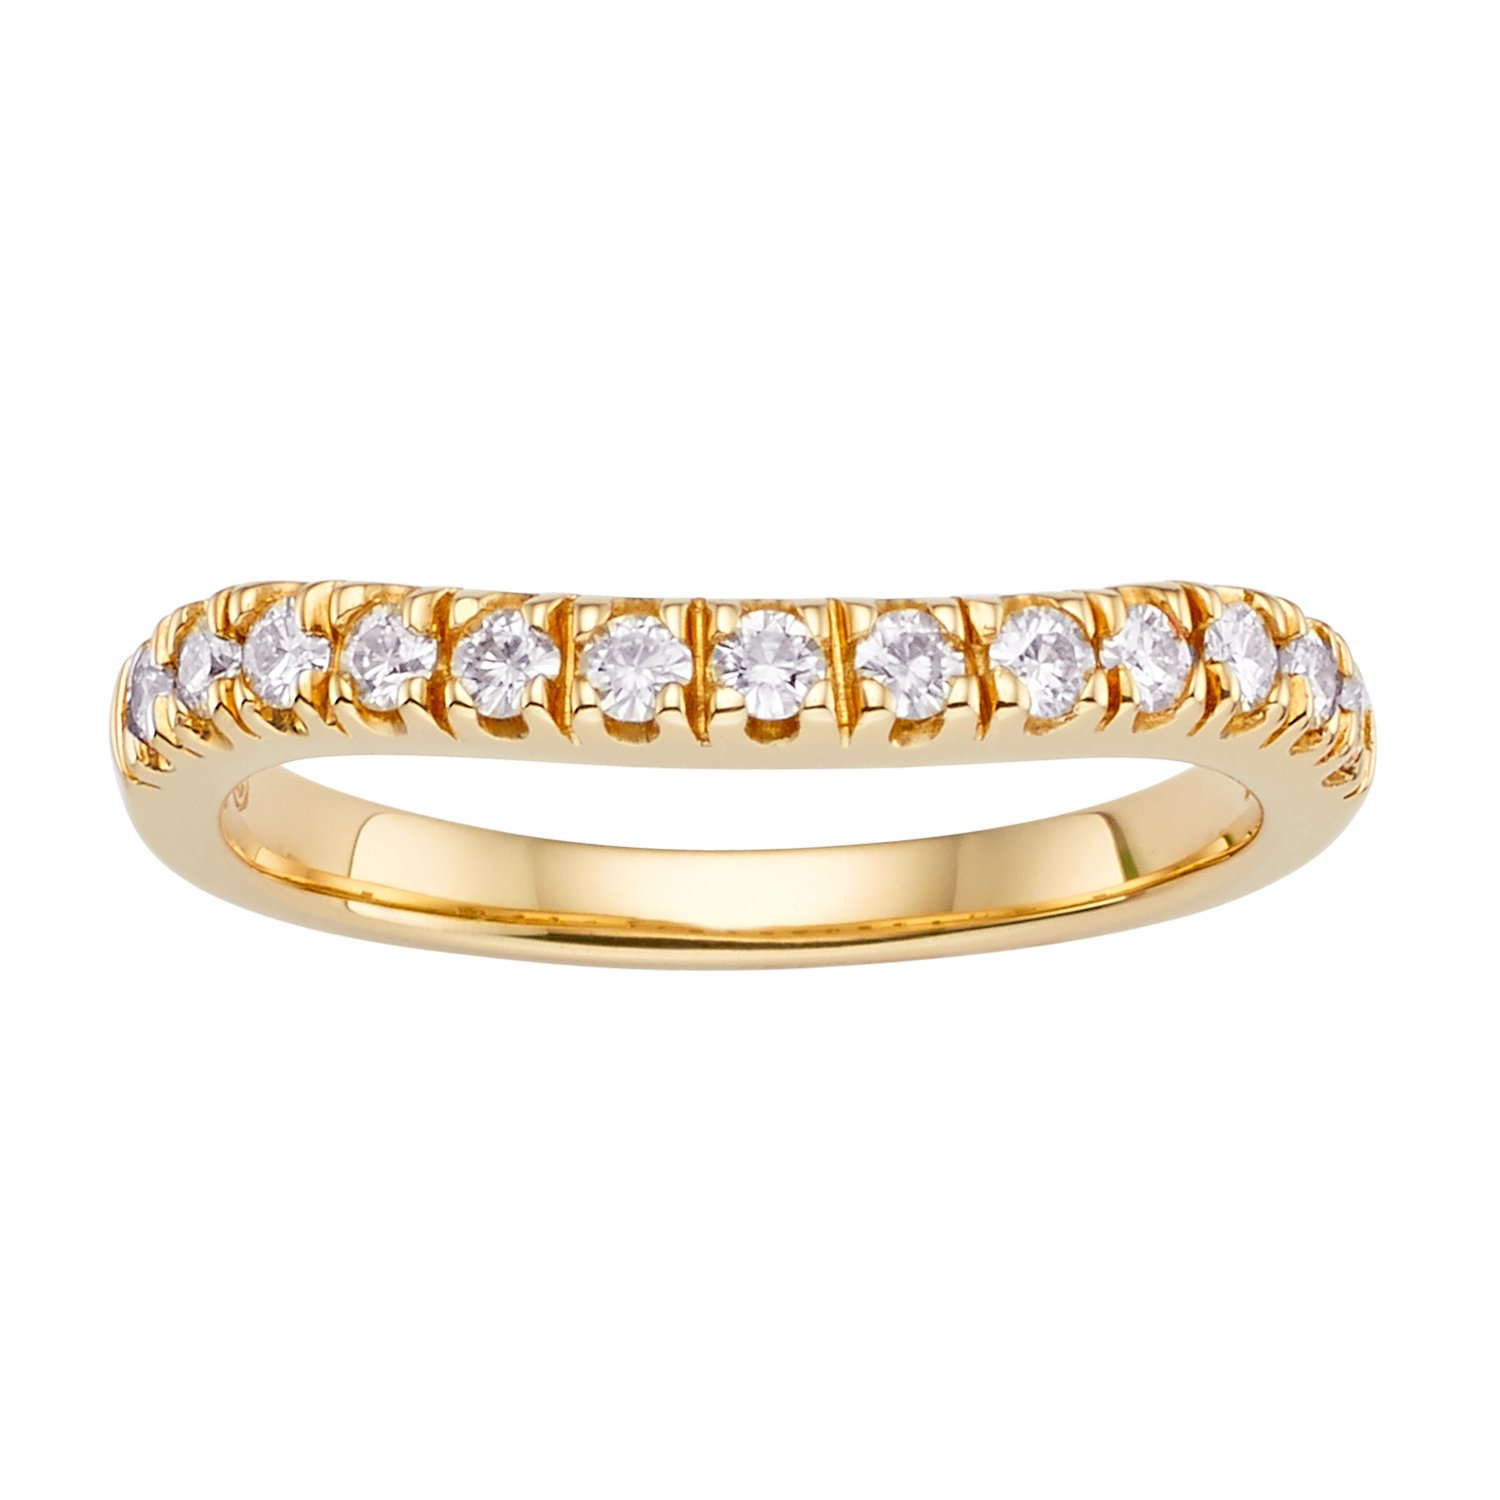 Forever Classic Yellow Gold 1.8mm Moissanite Wedding Band - size 6, 0.33cttw DEW By Charles & Colvard